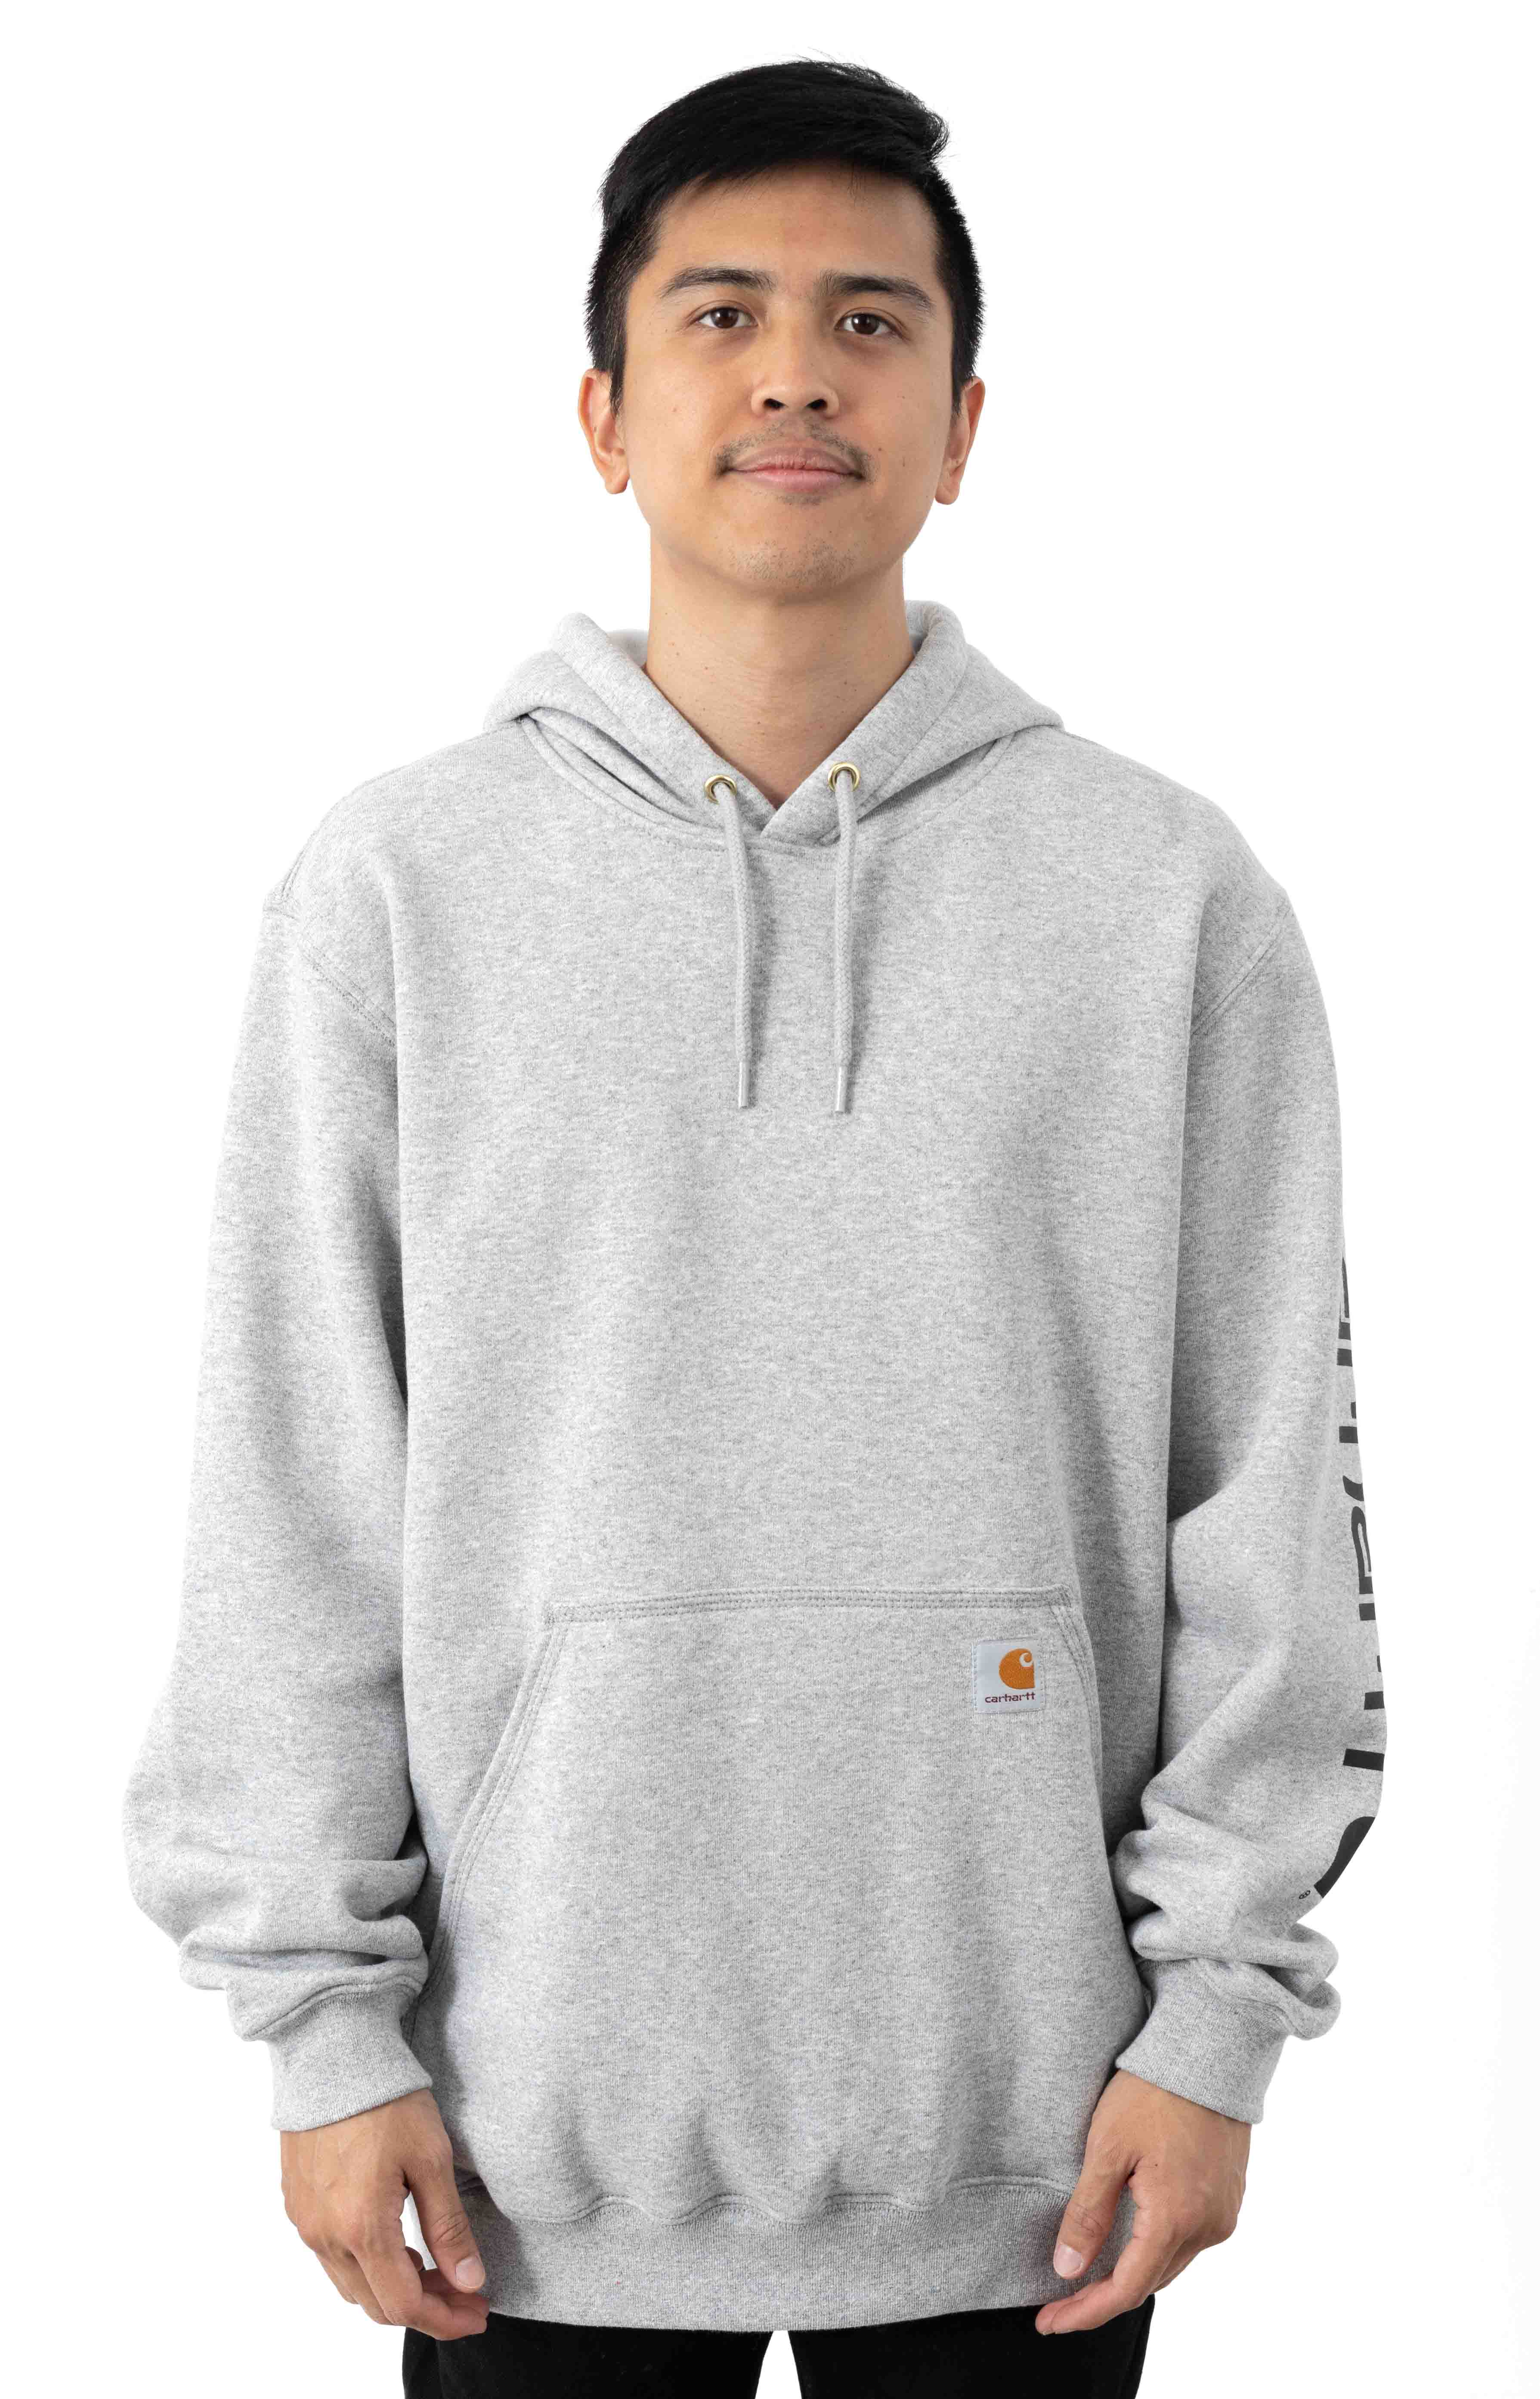 (K288) MW Signature Sleeve Logo Pullover Hoodie - Heather Grey/Black